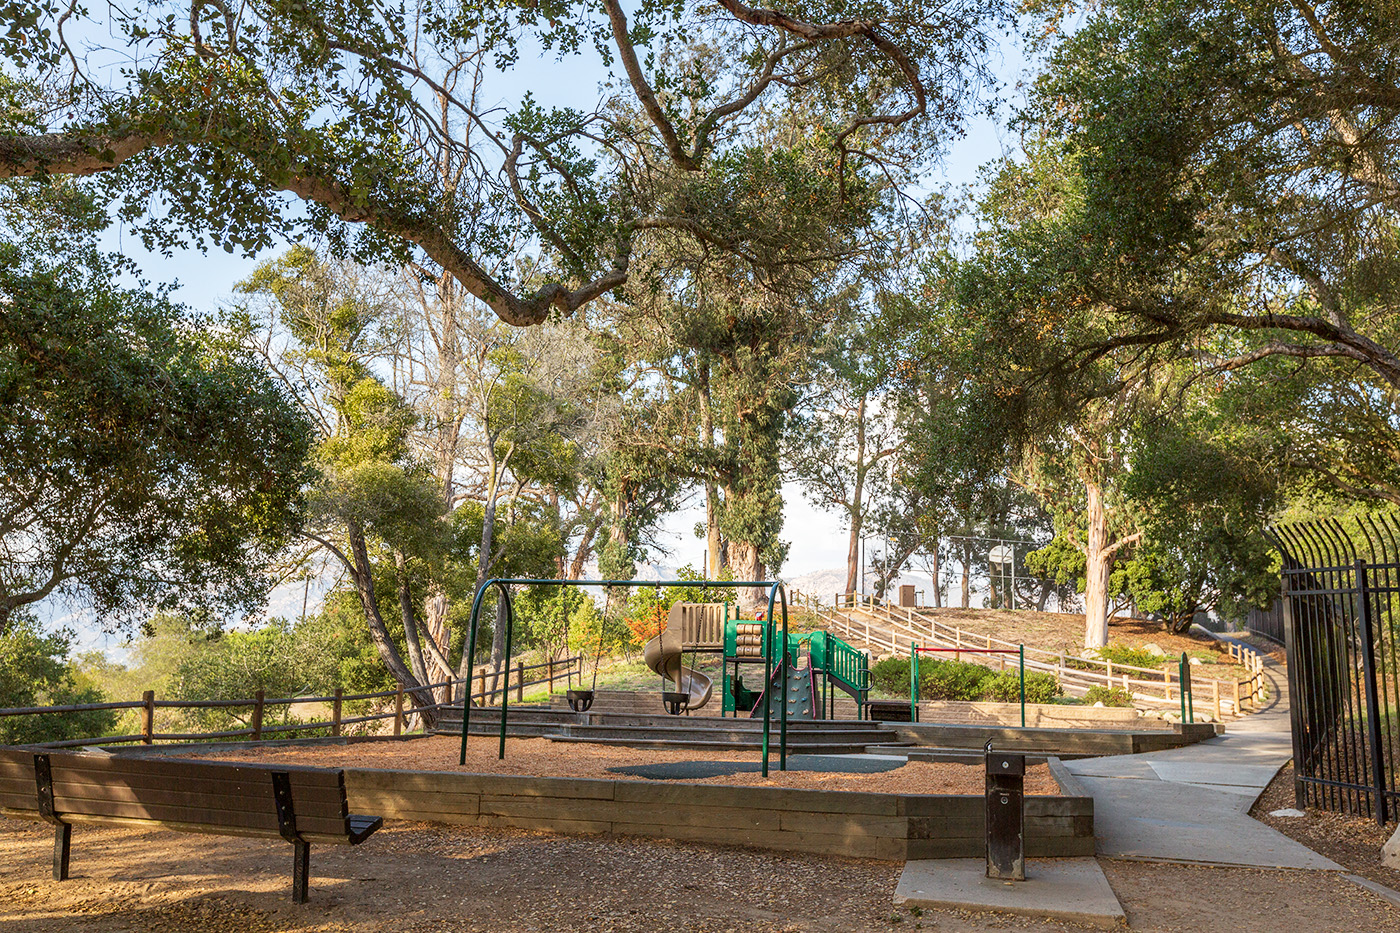 escondido park playground.jpg